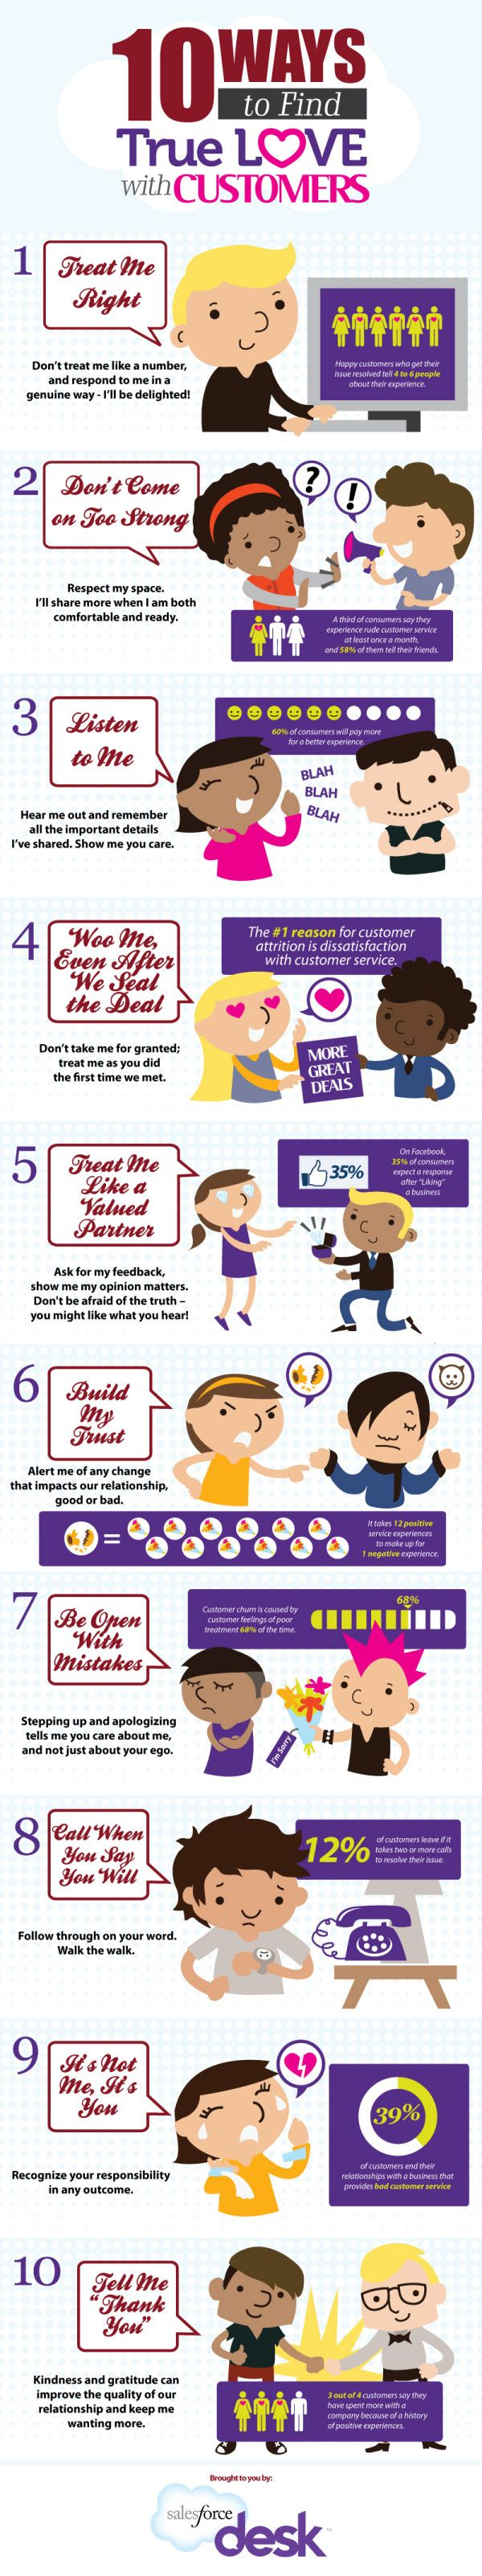 10 ways to find true love with customers [infographic]